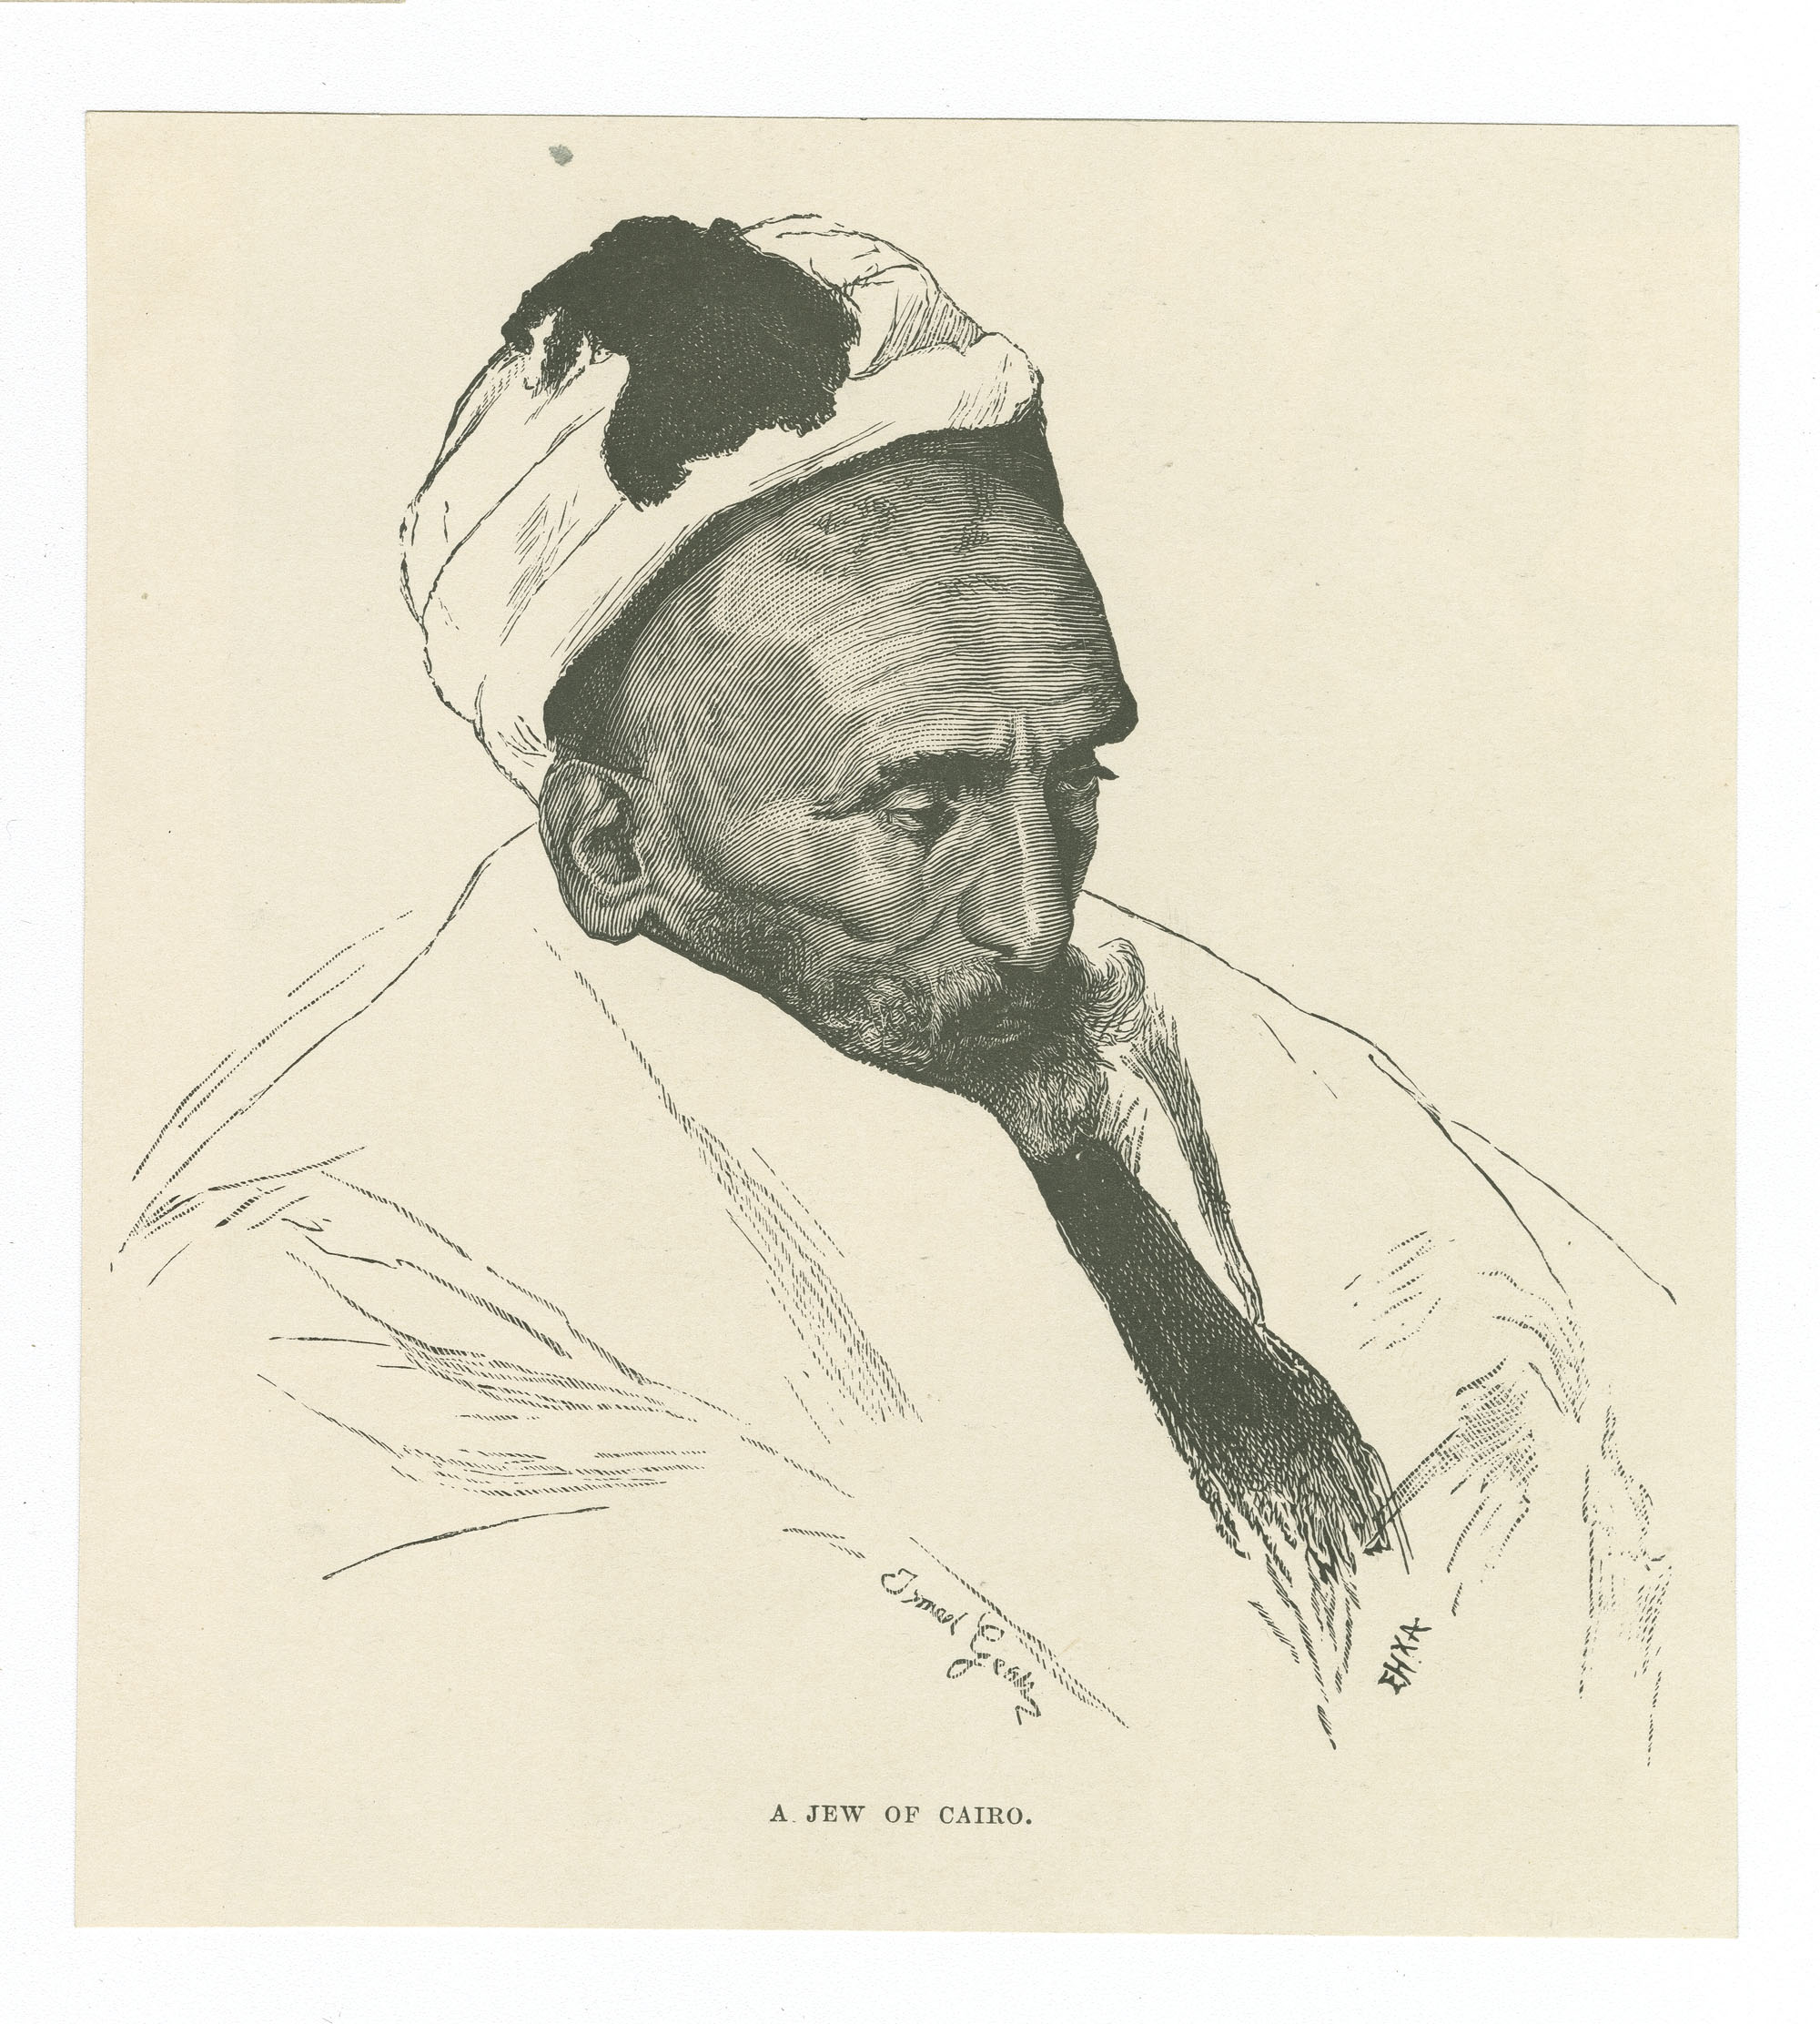 A Jew of Cairo